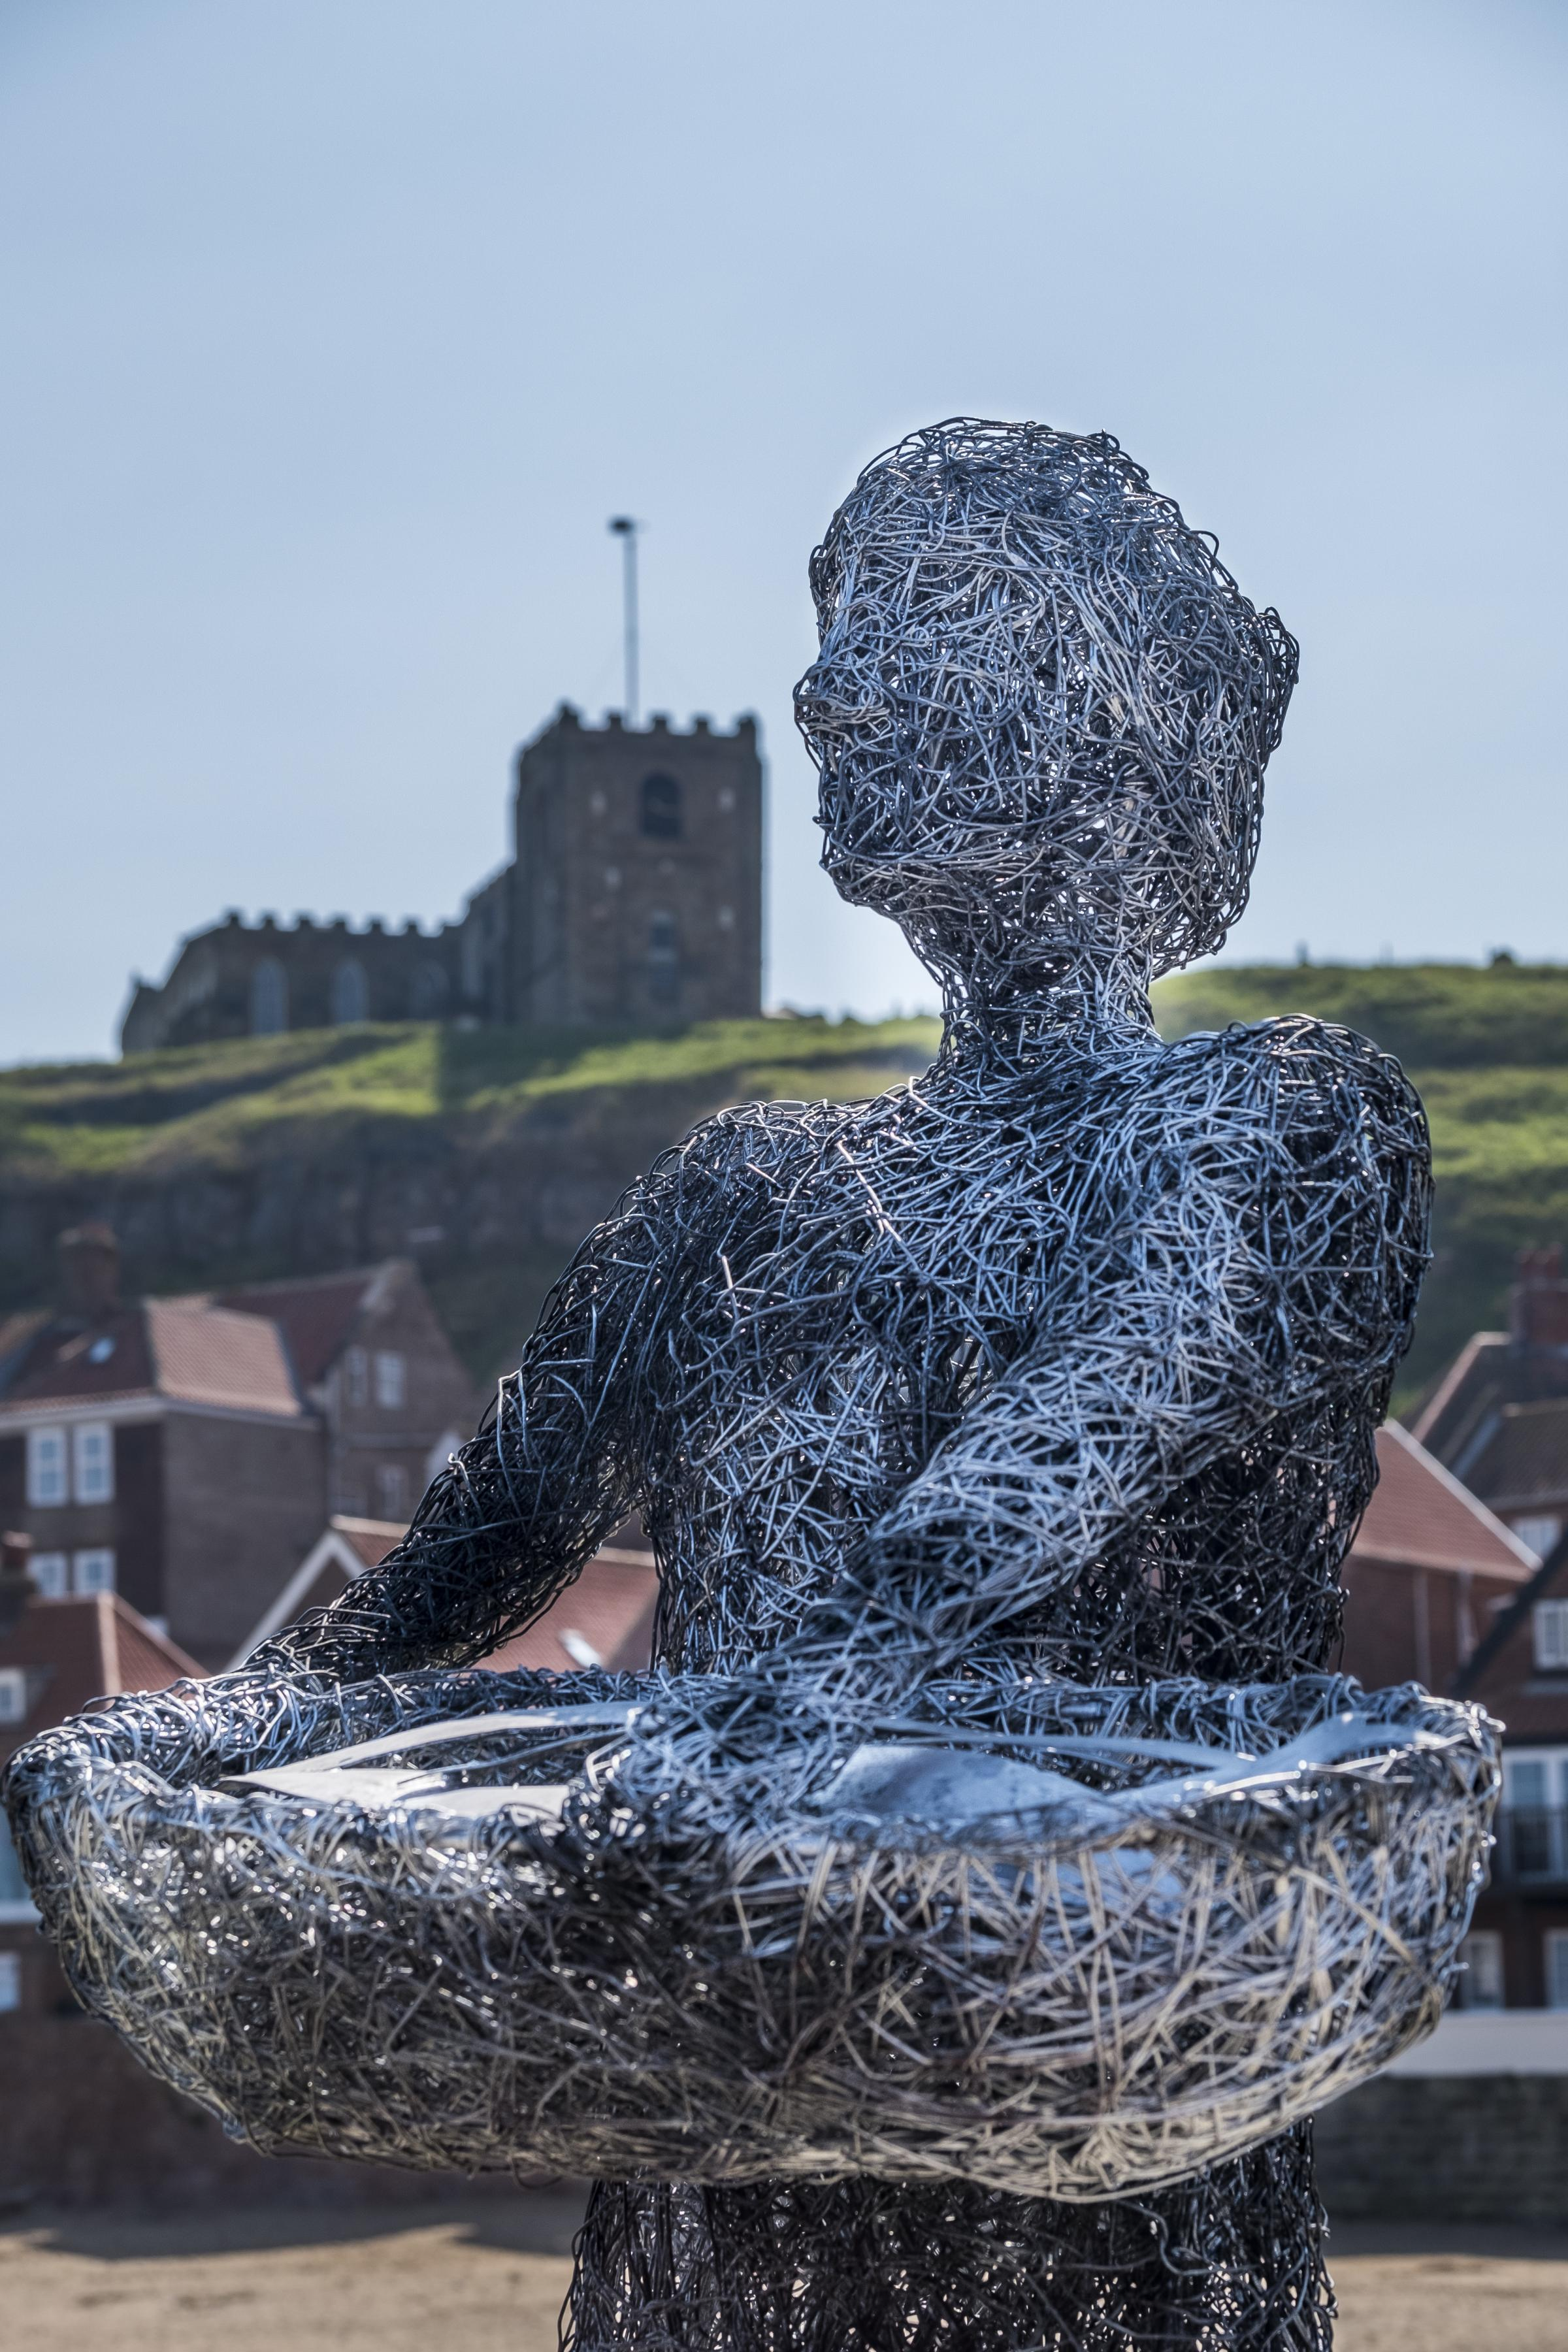 Life-size sculpture installed in time for Whitby's Fish & Ships